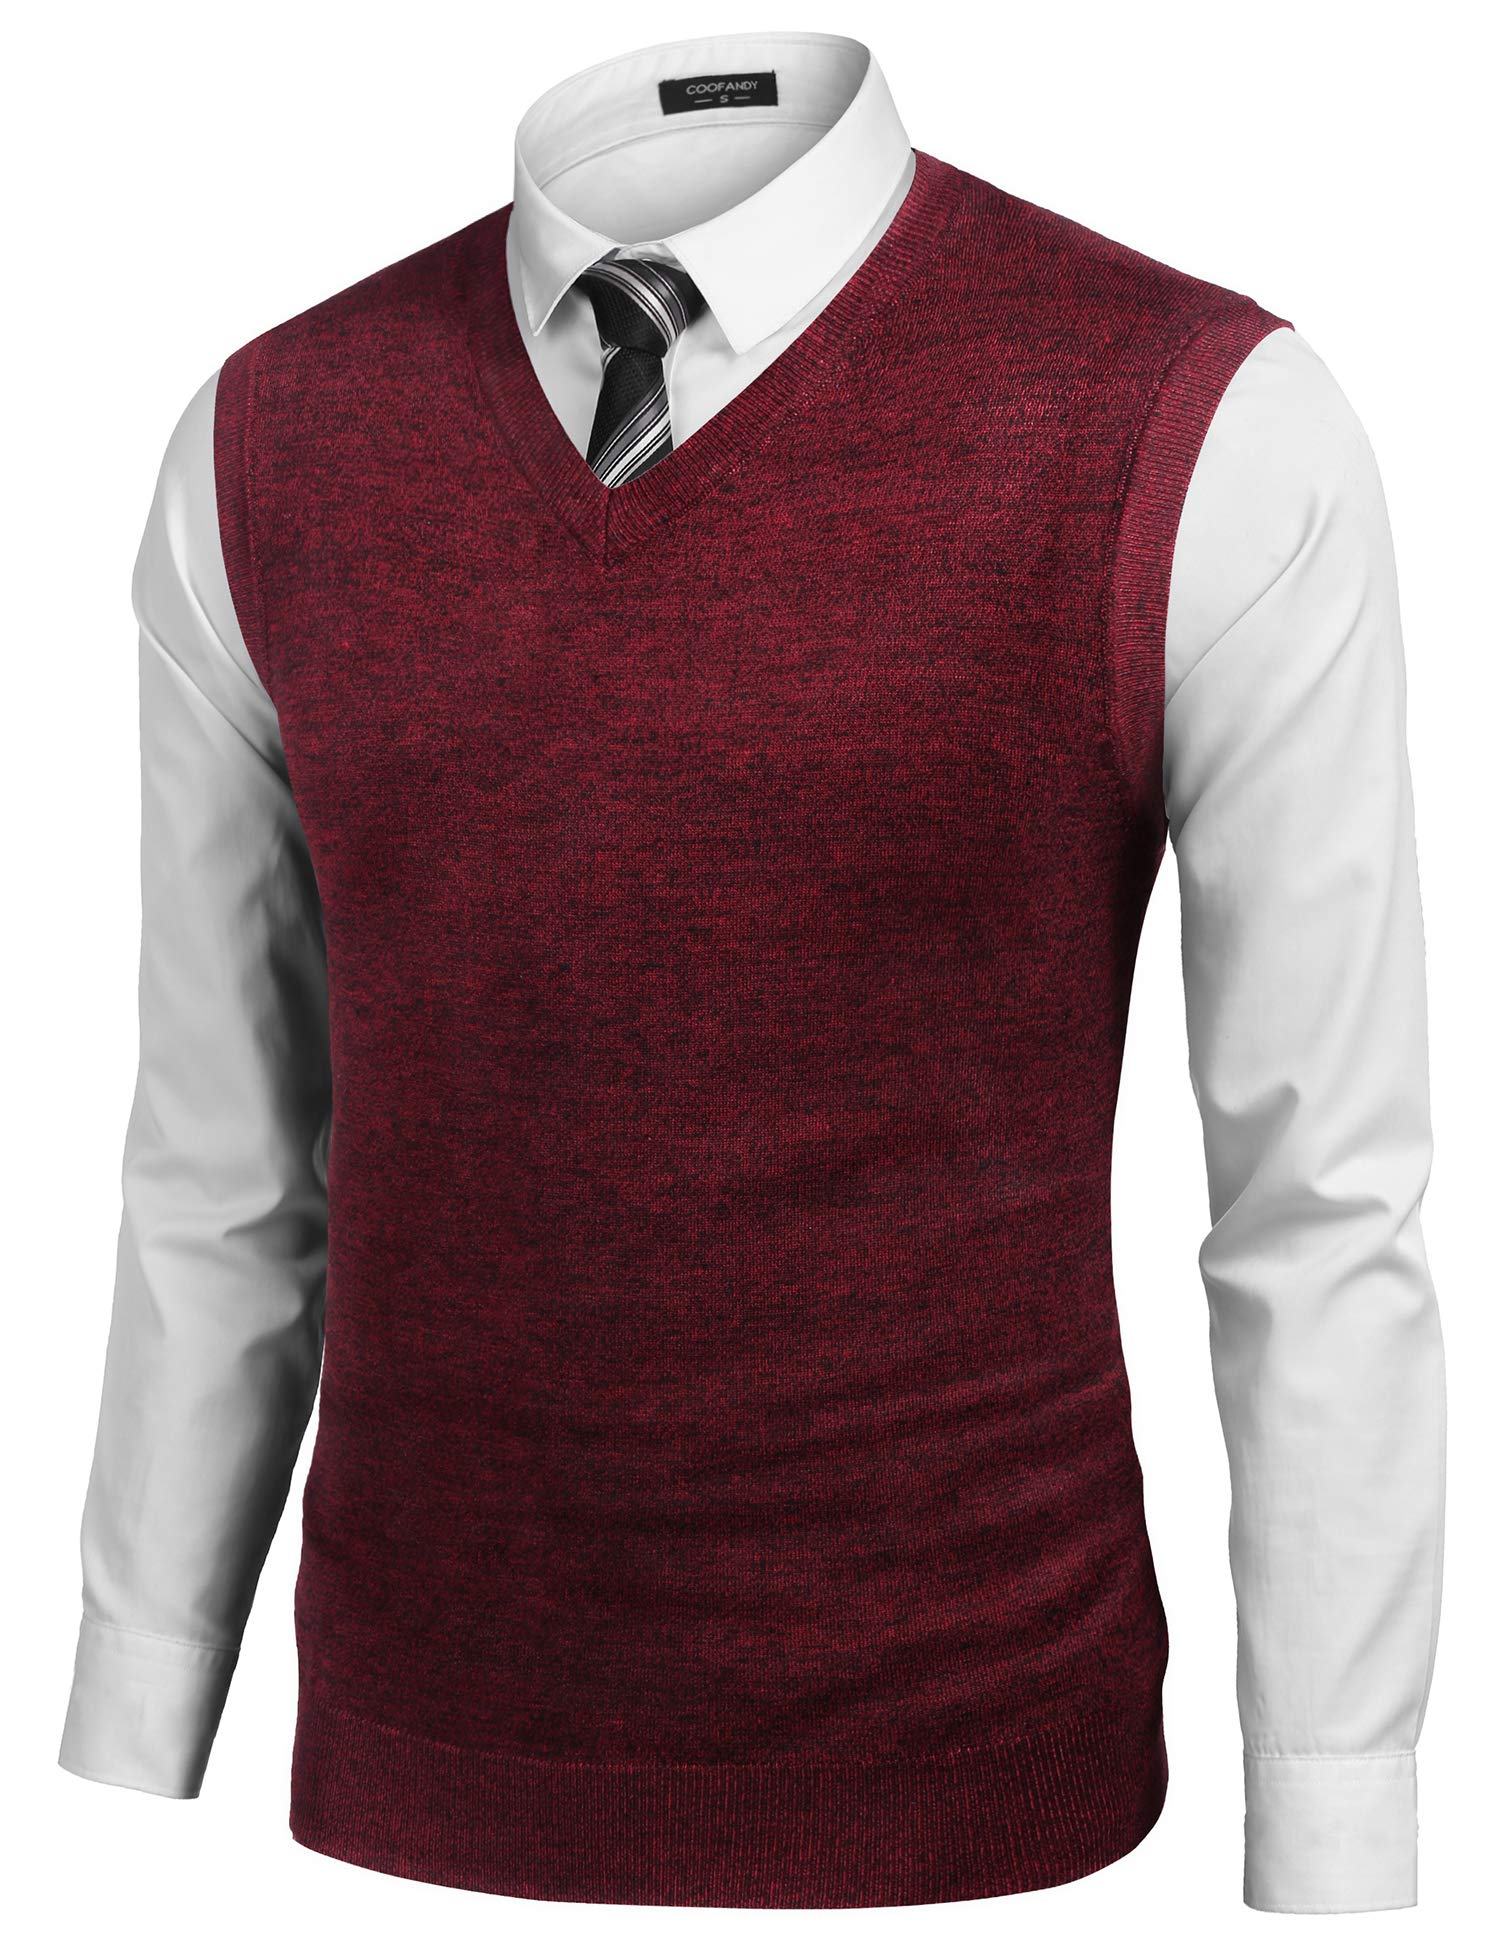 COOFANDY Mens Sweater Vest V Neck Plain Short Sleeve Sweater Pullover Knit Vest Wine Red by COOFANDY